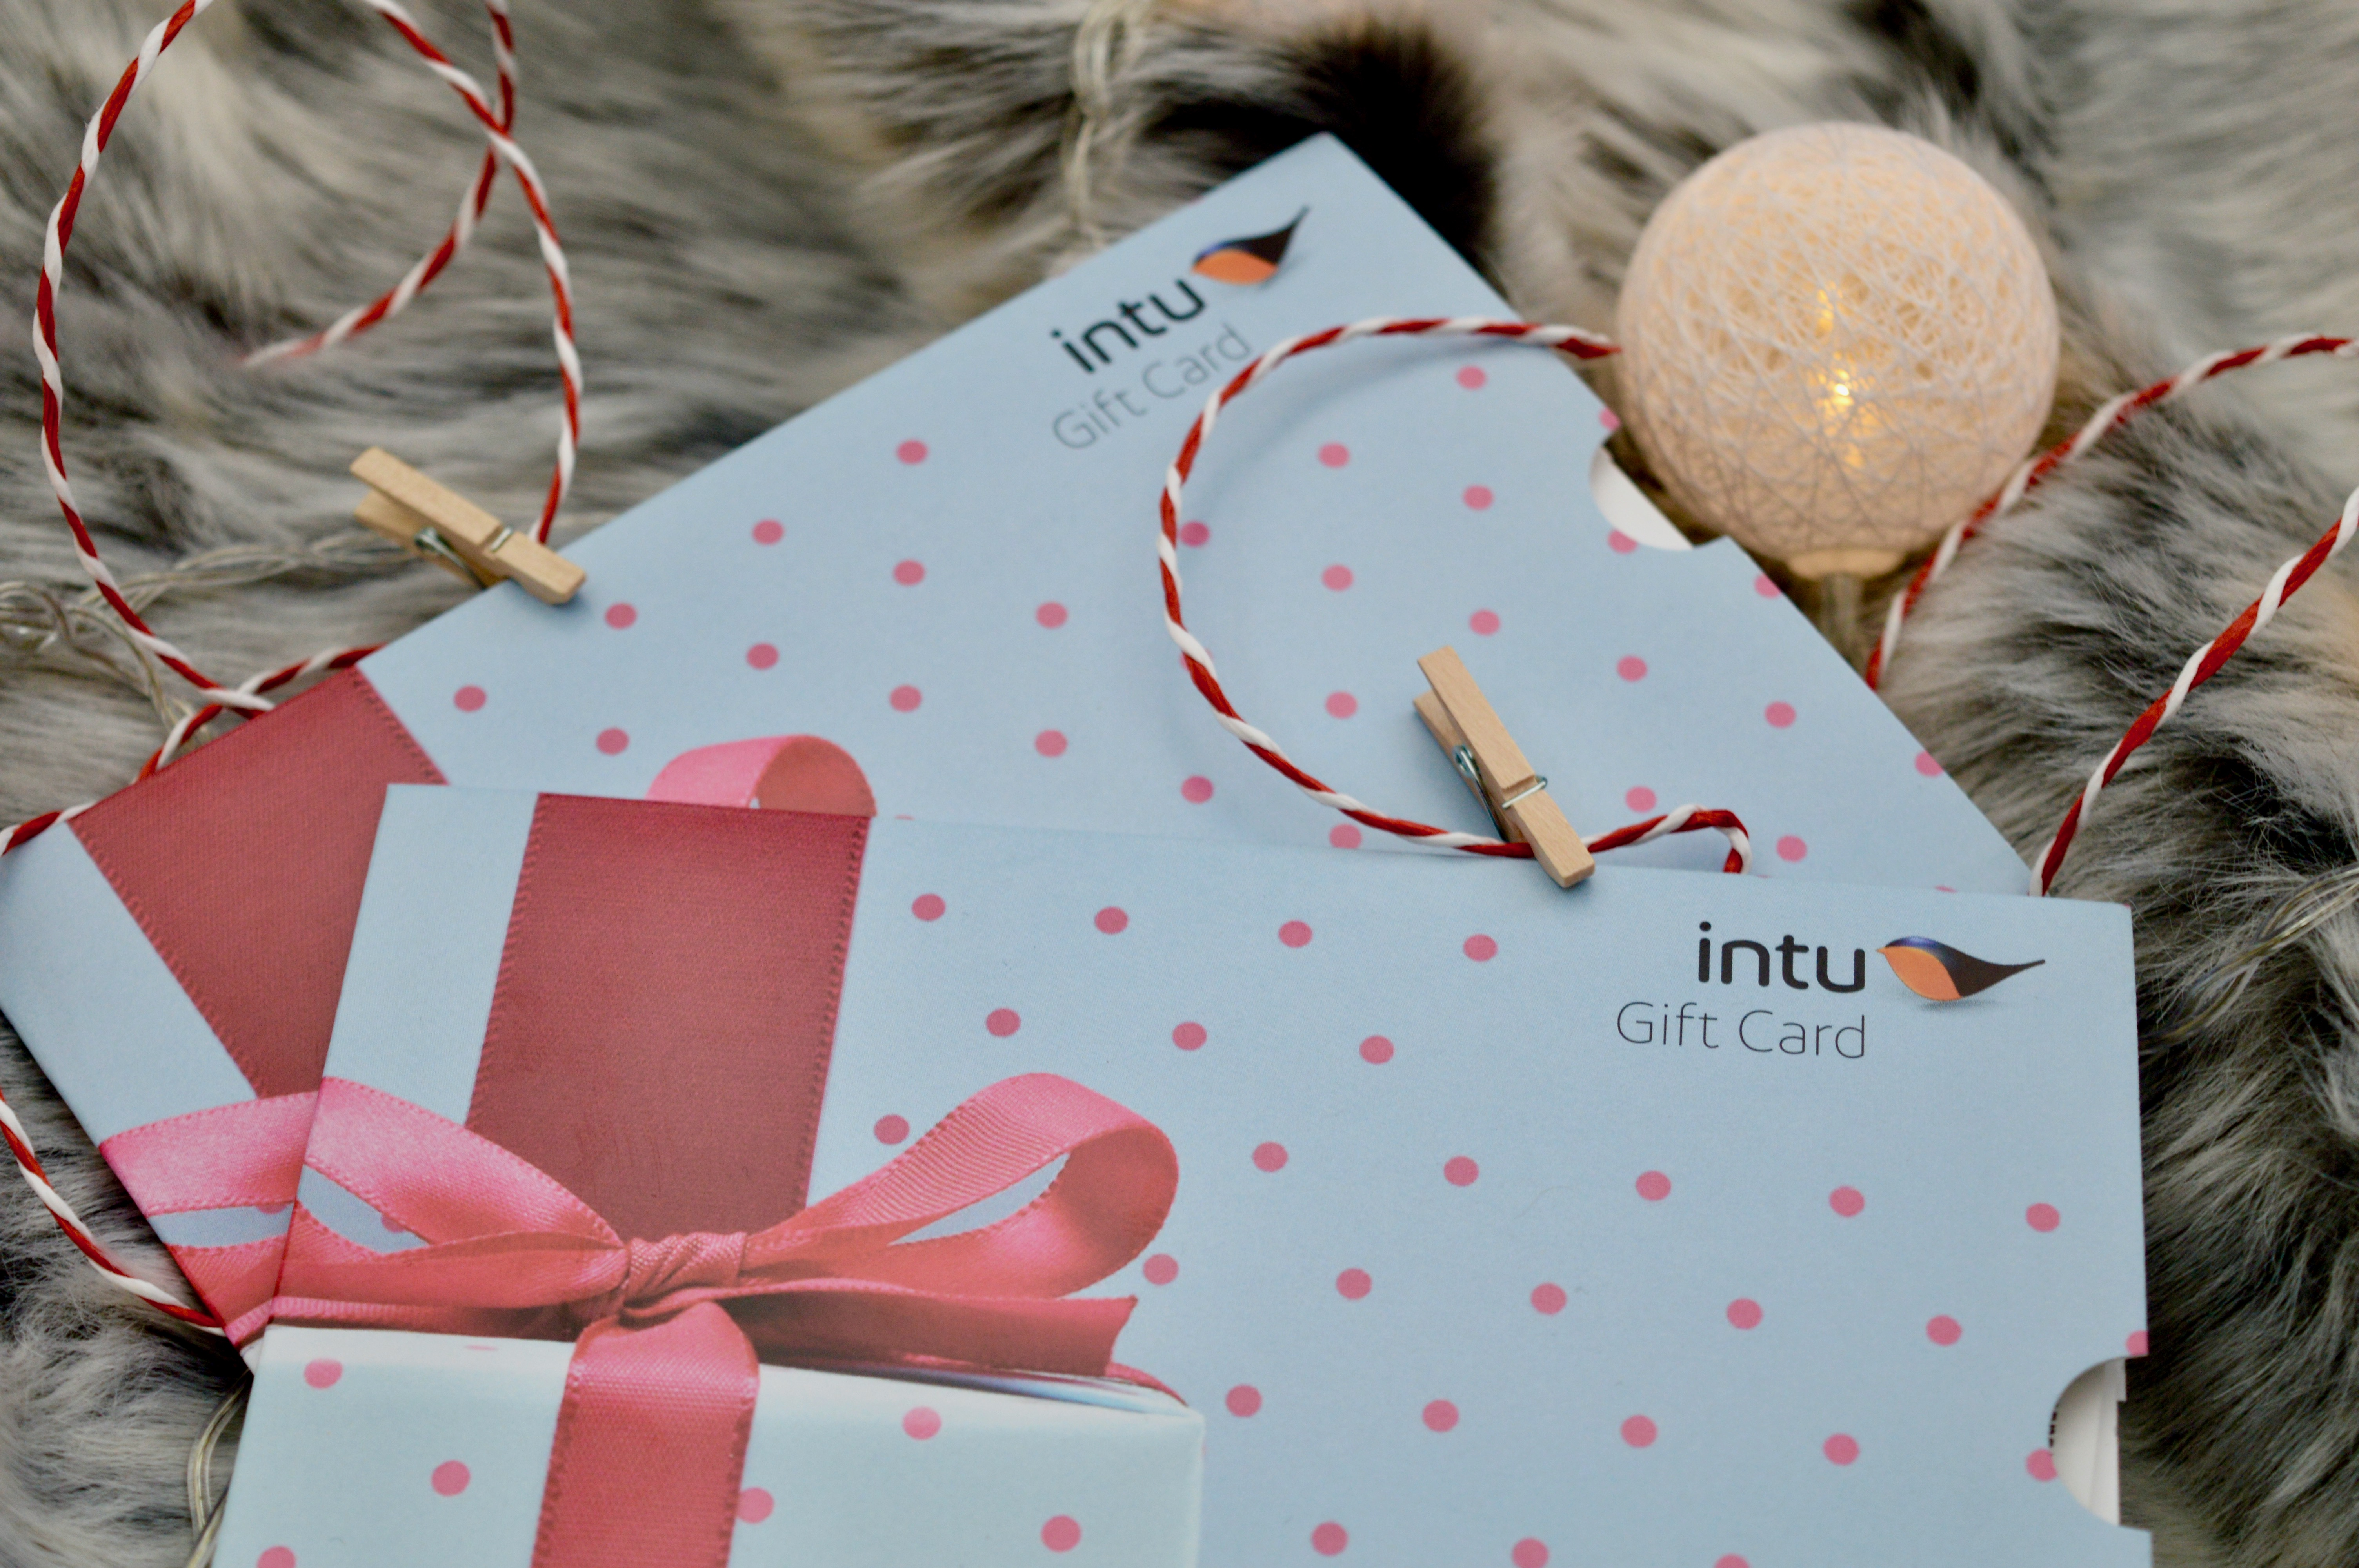 intu Gift Vouchers   What to buy somebody who has everything   Christmas Gift Guide   Elle Blonde Luxury Lifestyle Destination Blog